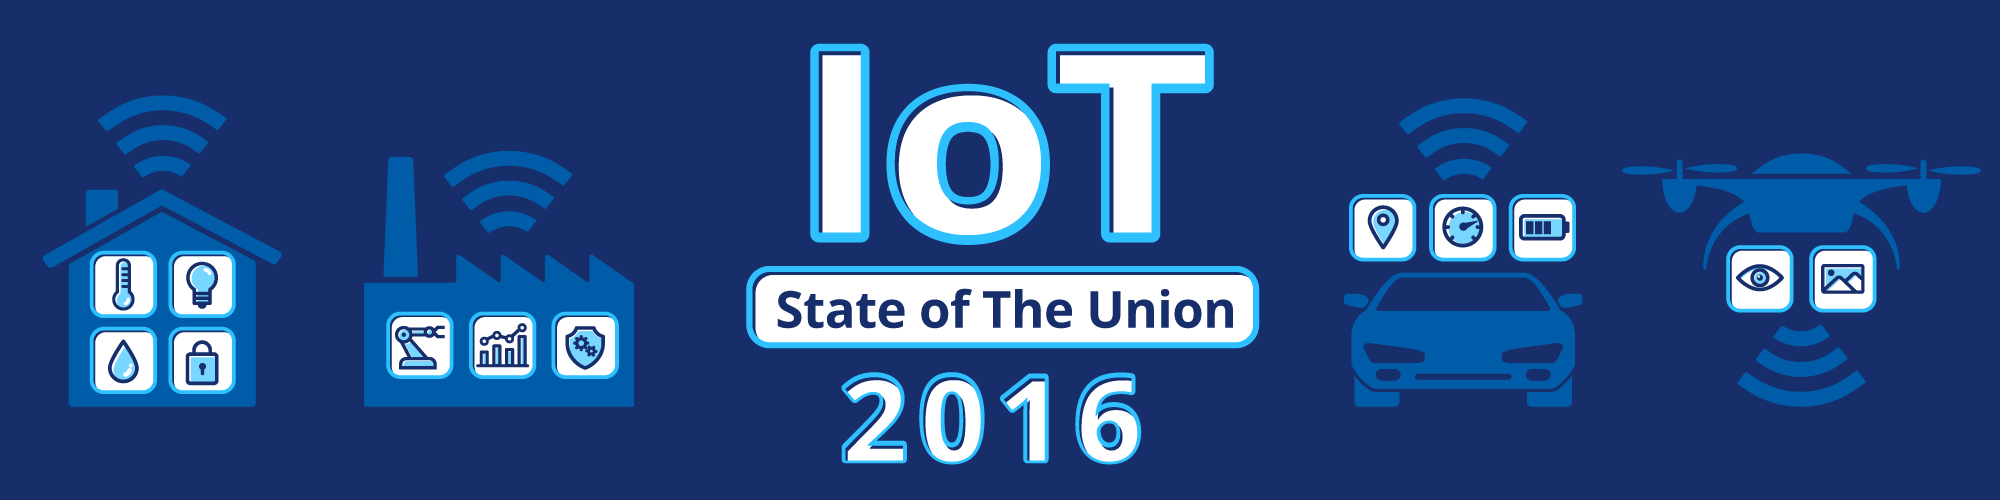 IoT Startup State Of The Union 2016